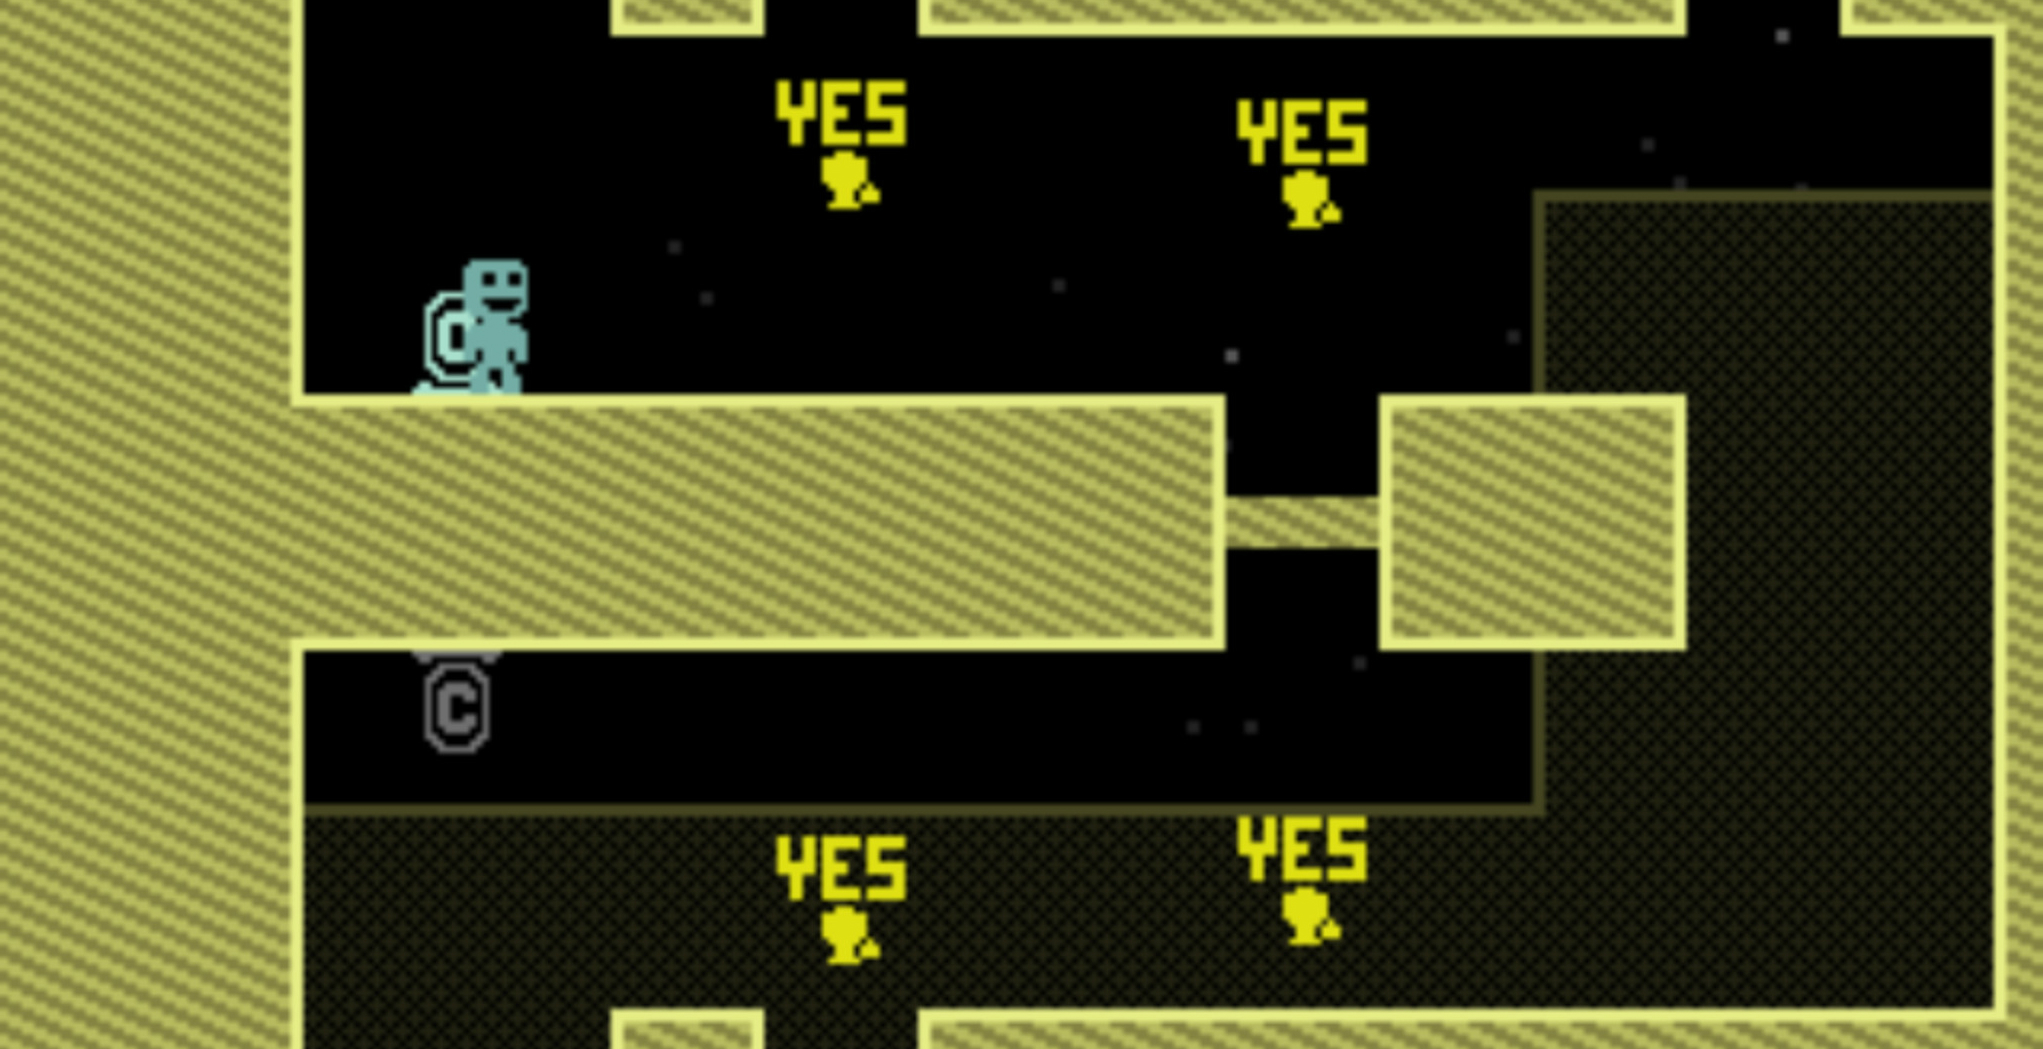 After nearly four months, VVVVVV is back on the 3DS eShop